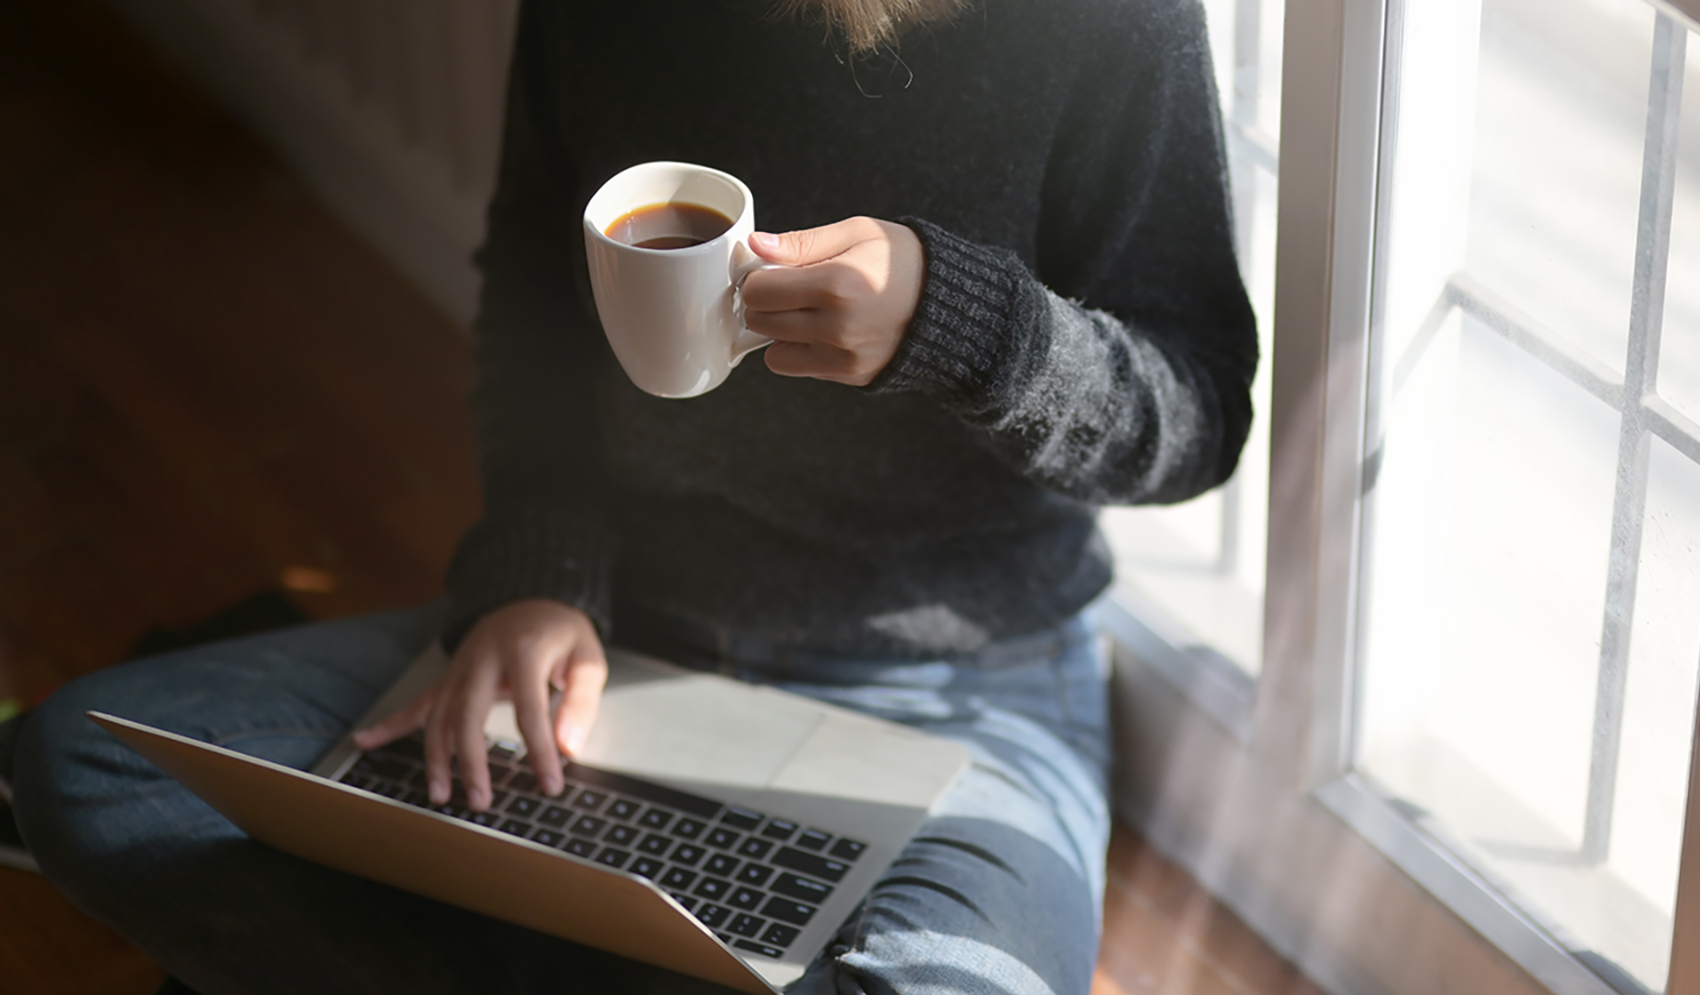 Close-up view of a student working on her project and drinking coffee while sitting near the windows at her workplace